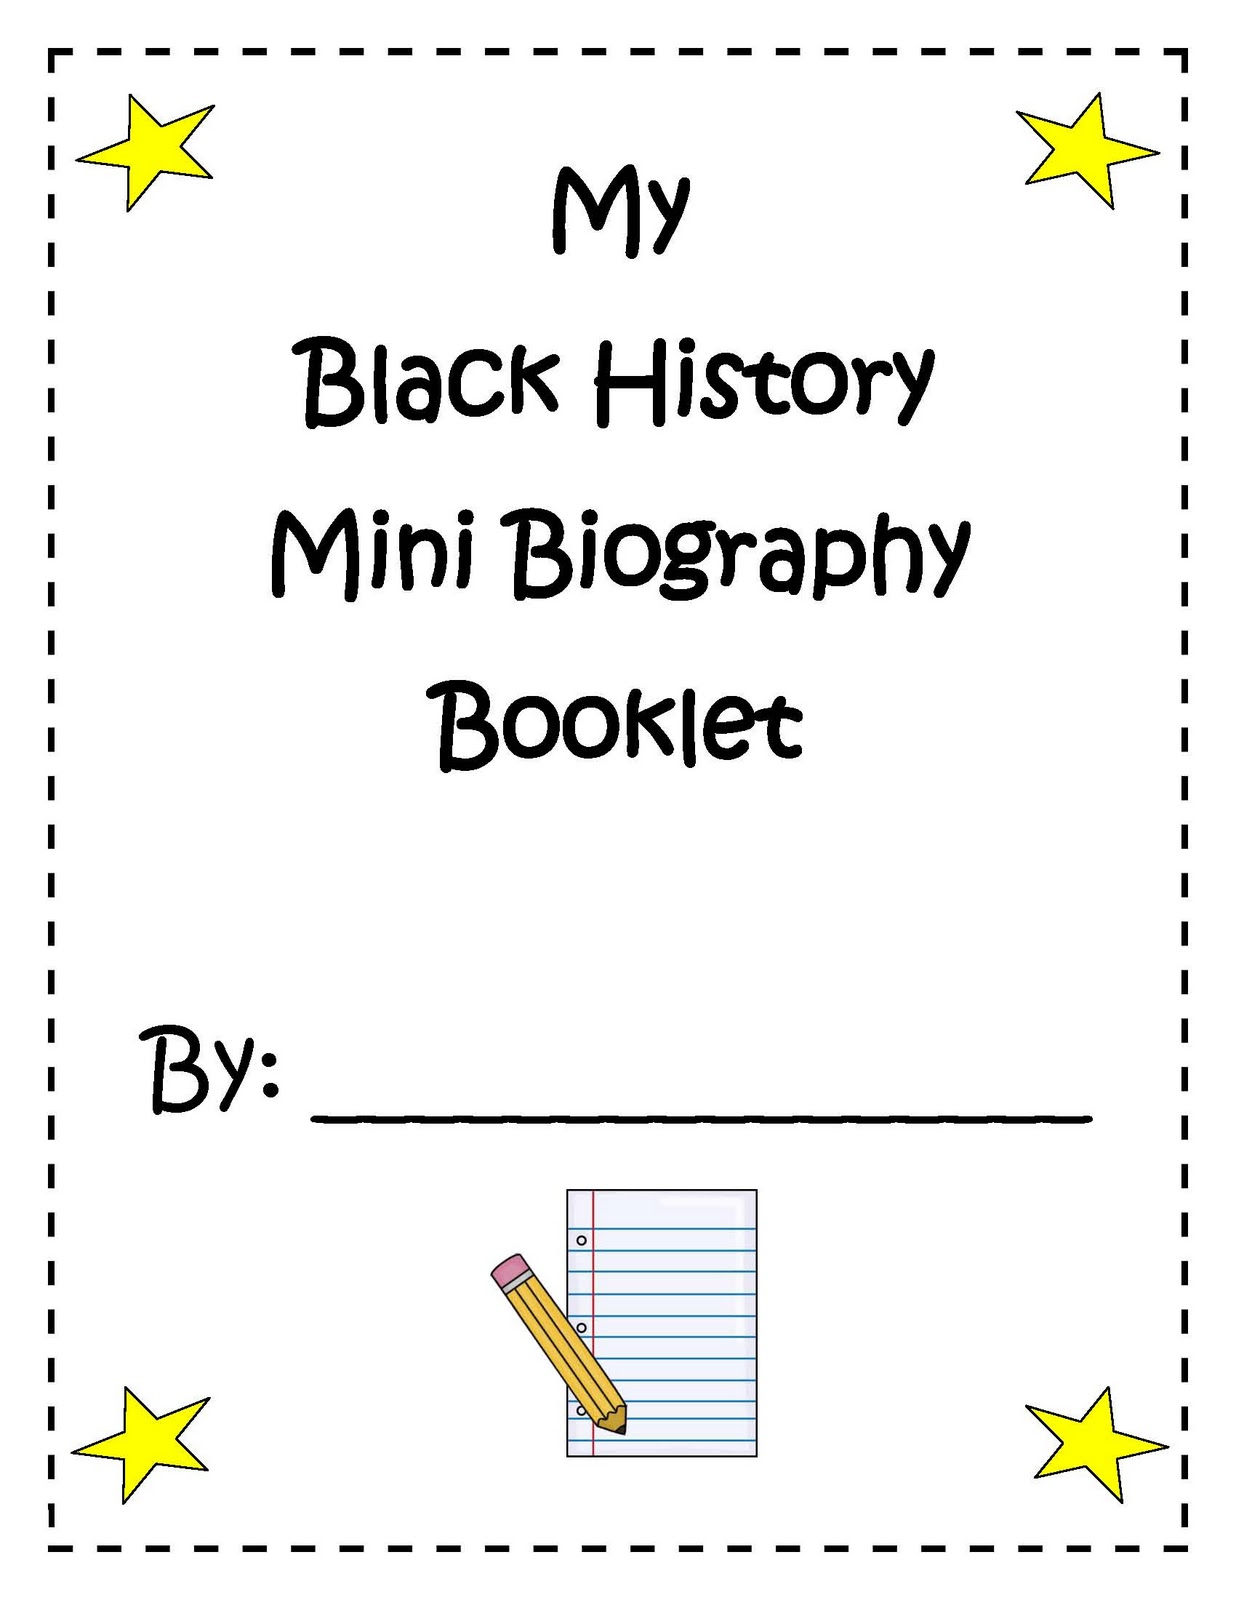 Crafty image regarding social studiesresearch format for elementary students free printable templates